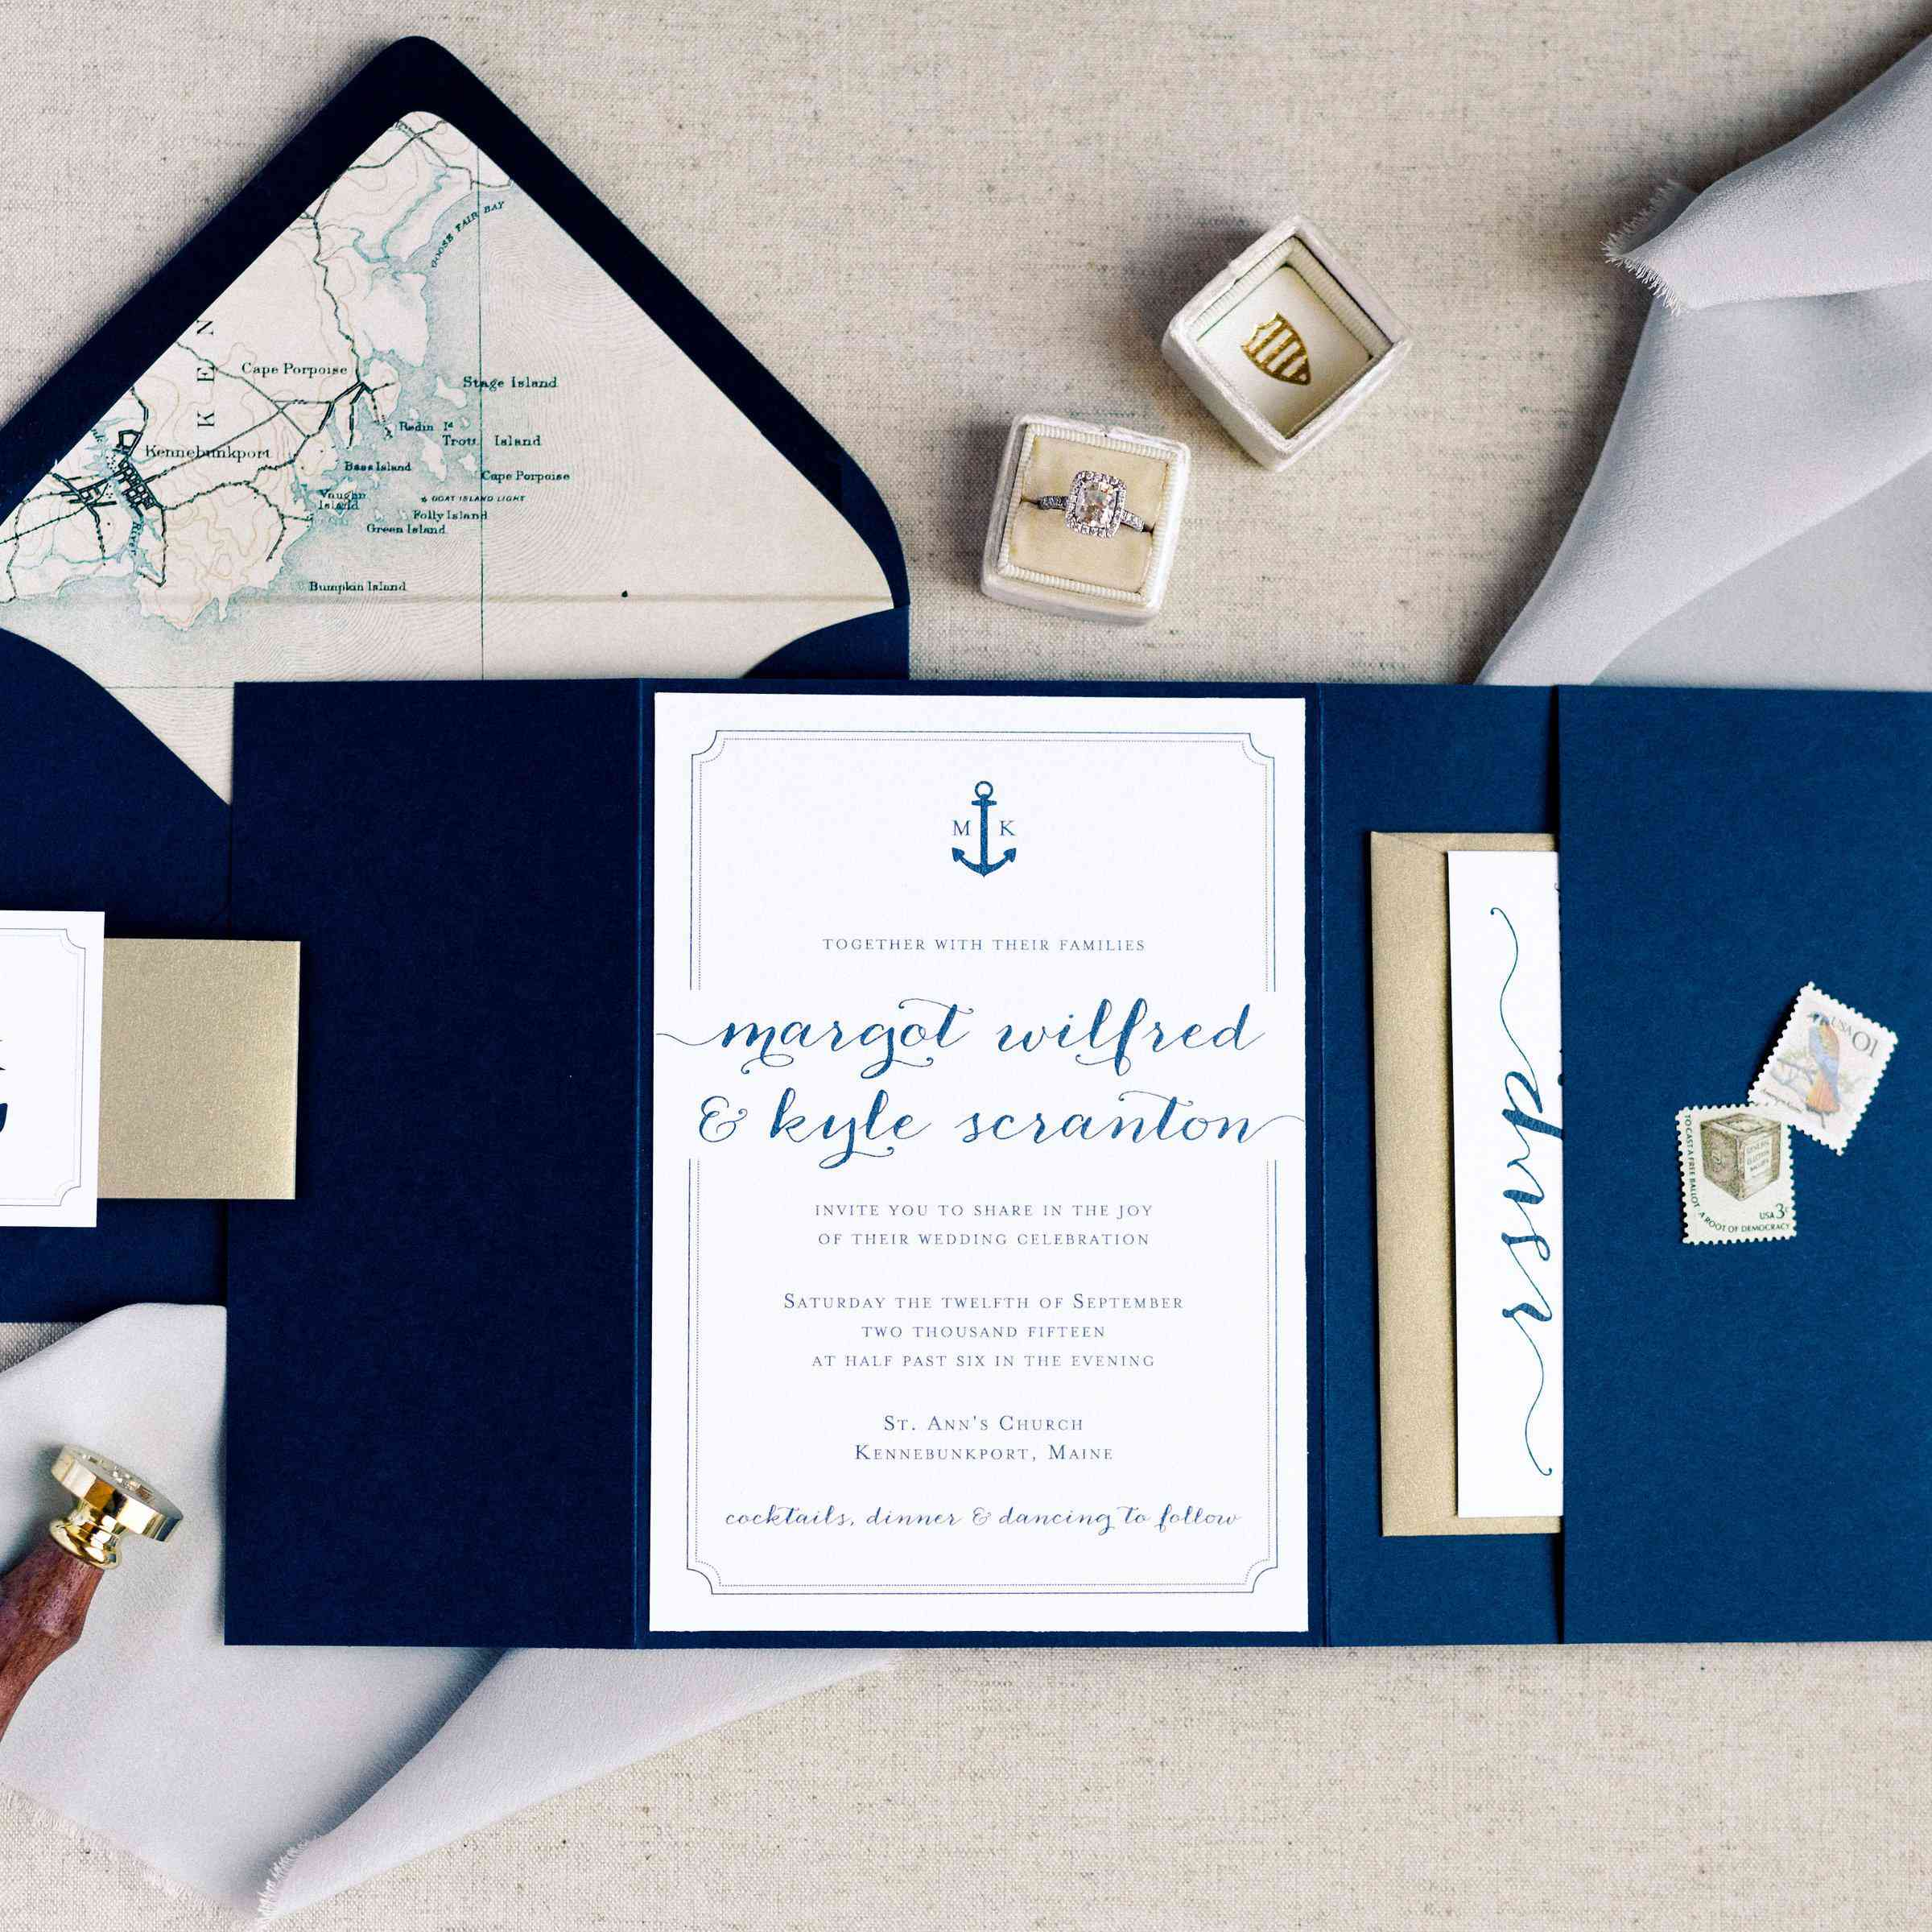 Nautical Wedding Invitations.13 Nautical Wedding Invitations That Are Perfect For Your Seaside